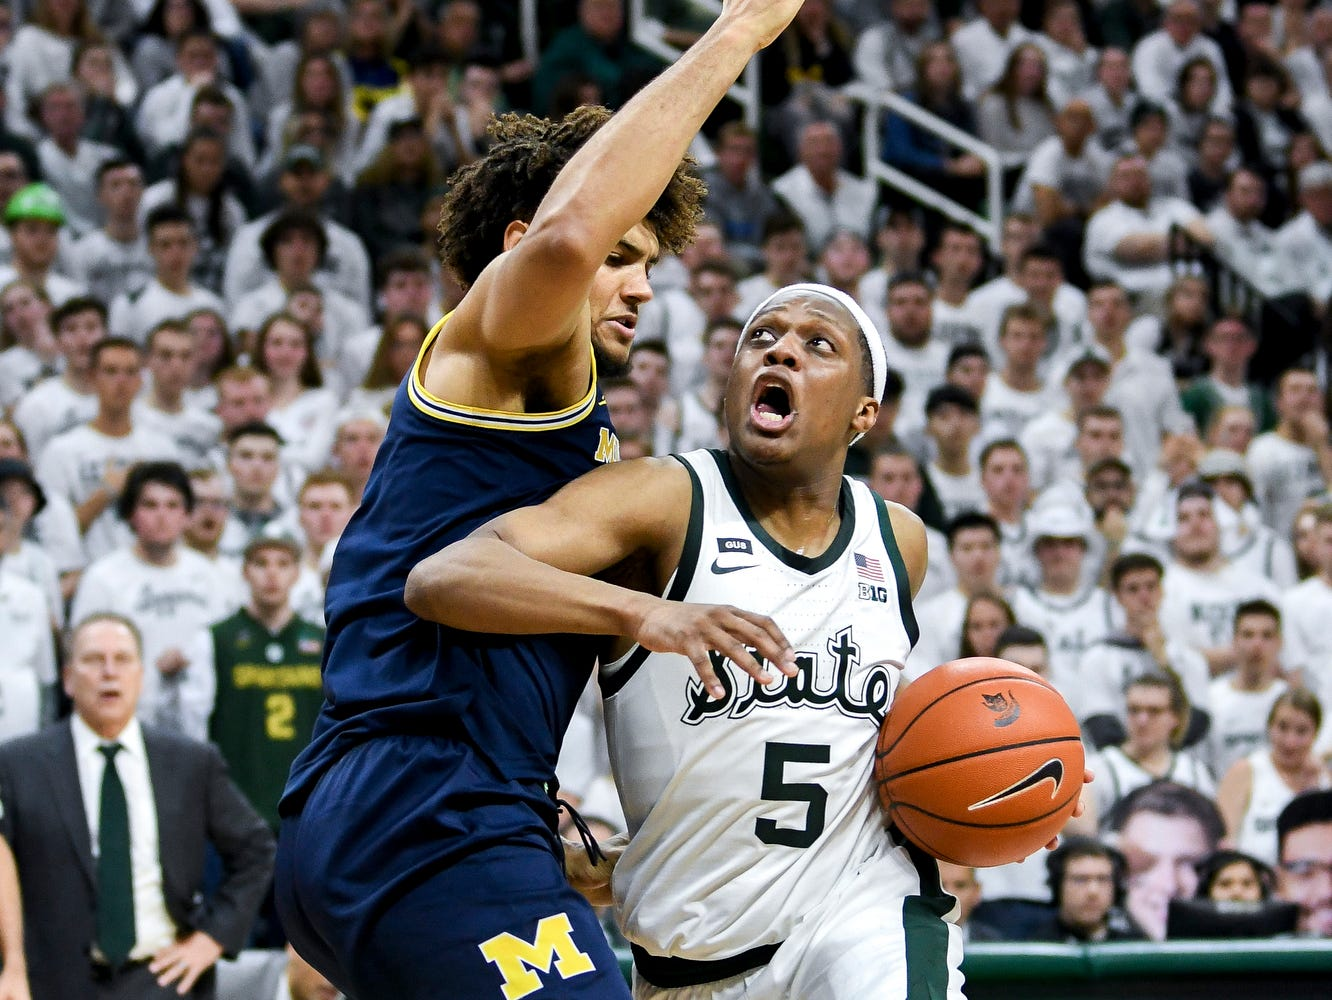 Michigan State's Cassius Winston, right, moves past Michigan's Isaiah Livers during the second half on Saturday, March 9, 2019, at the Breslin Center in East Lansing.